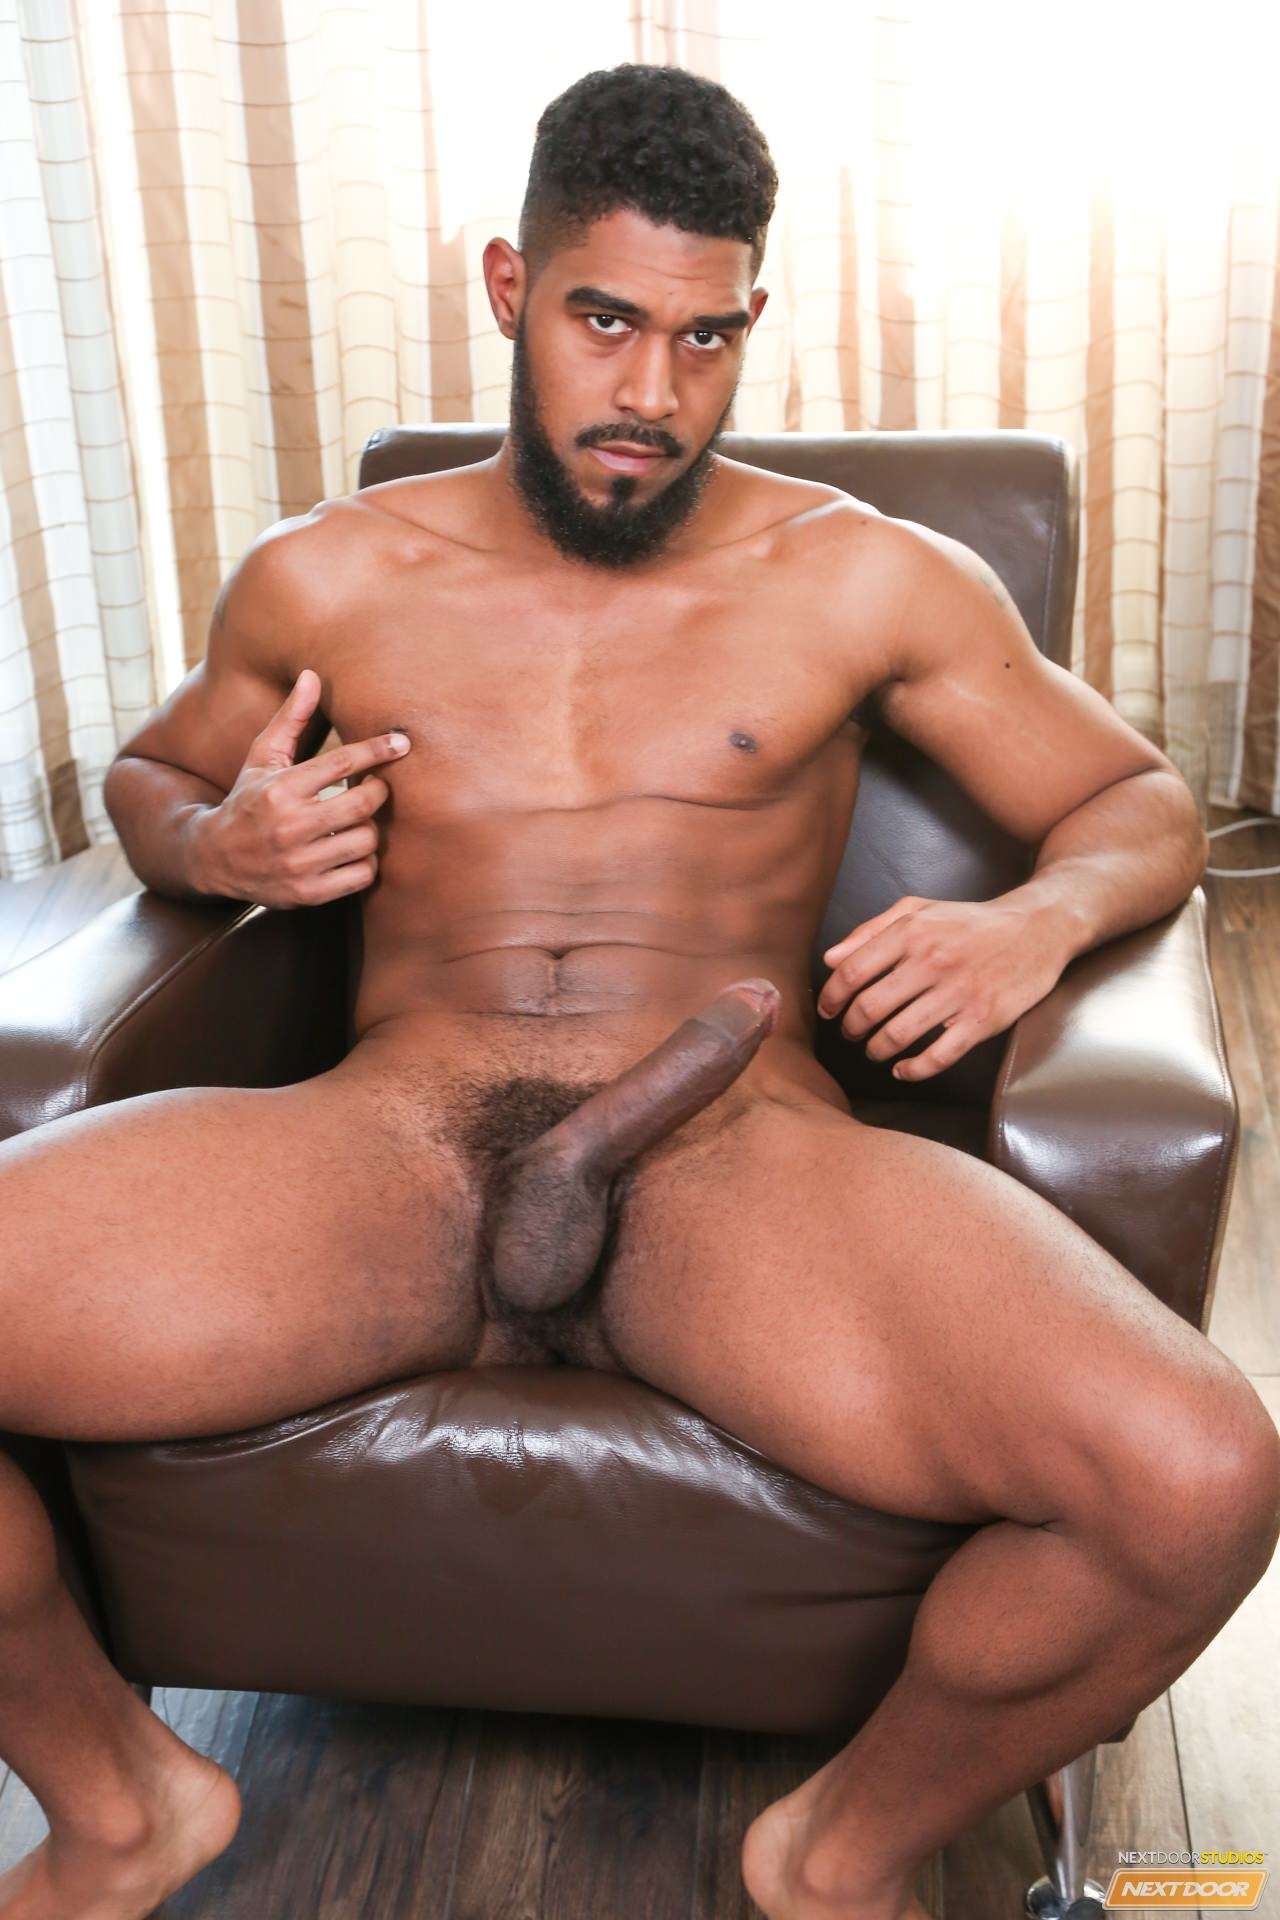 Black gay porn actors